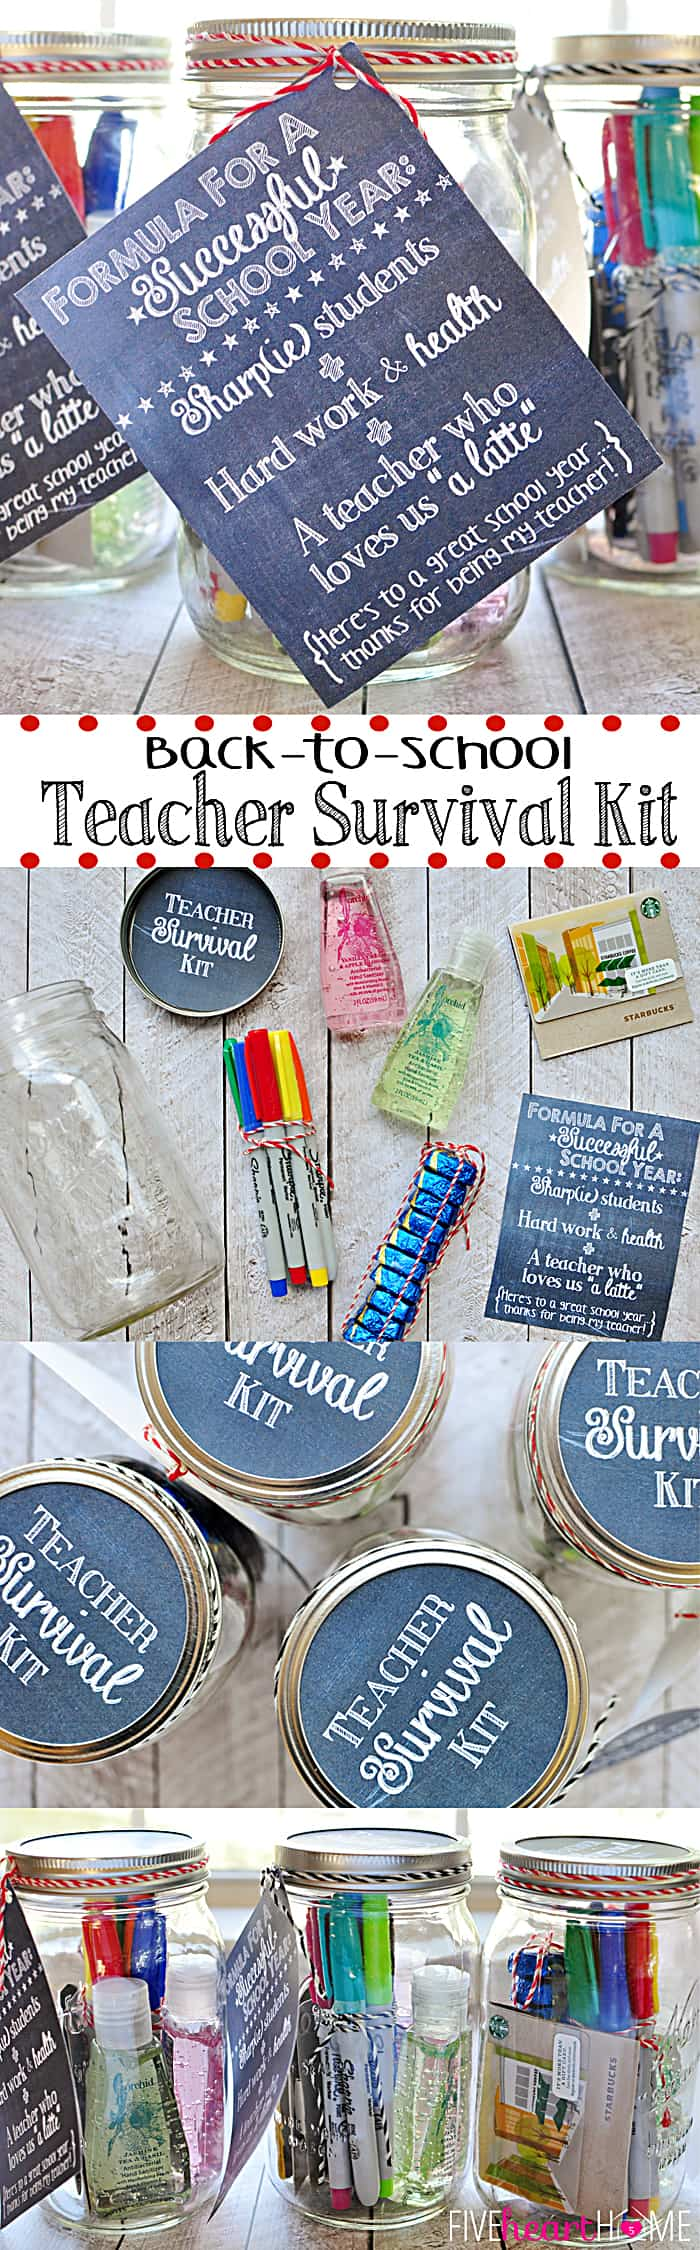 Back to School Teacher Survival Kit Free Printables ~ Mason jar teacher gift featuring Sharpies, hand sanitizer, Starbucks gift card, and chocolate | FiveHeartHome.com